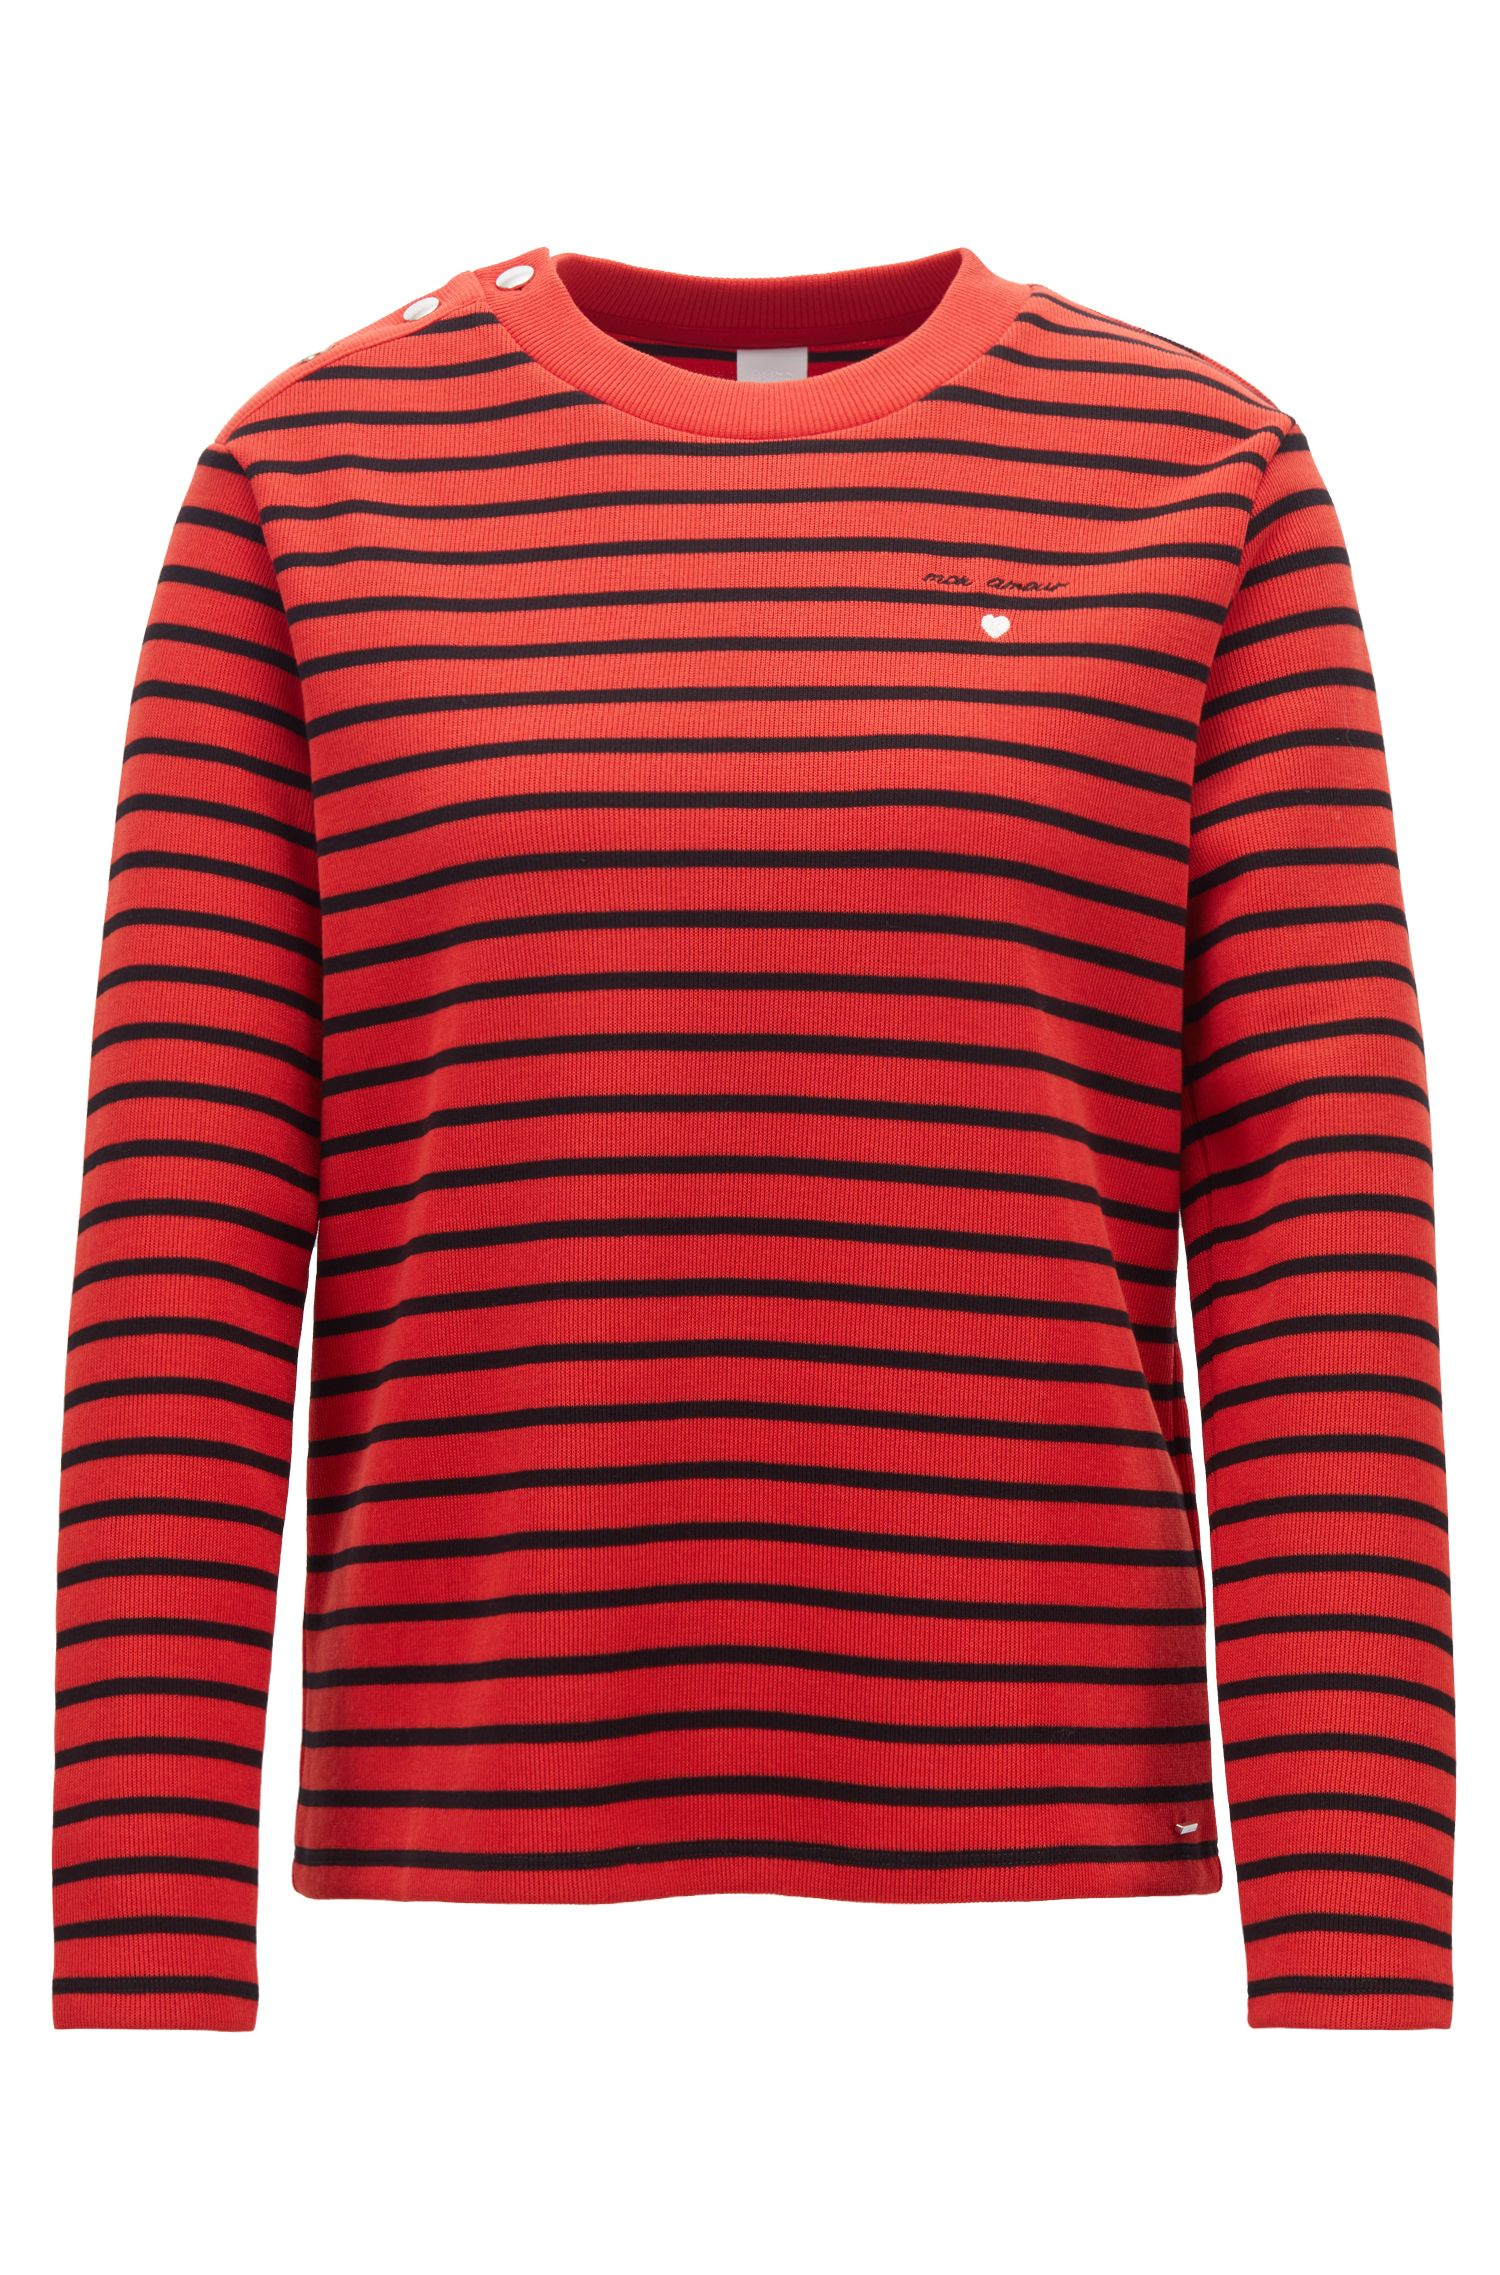 Long-sleeved striped T-shirt with slogan embroidery, Red